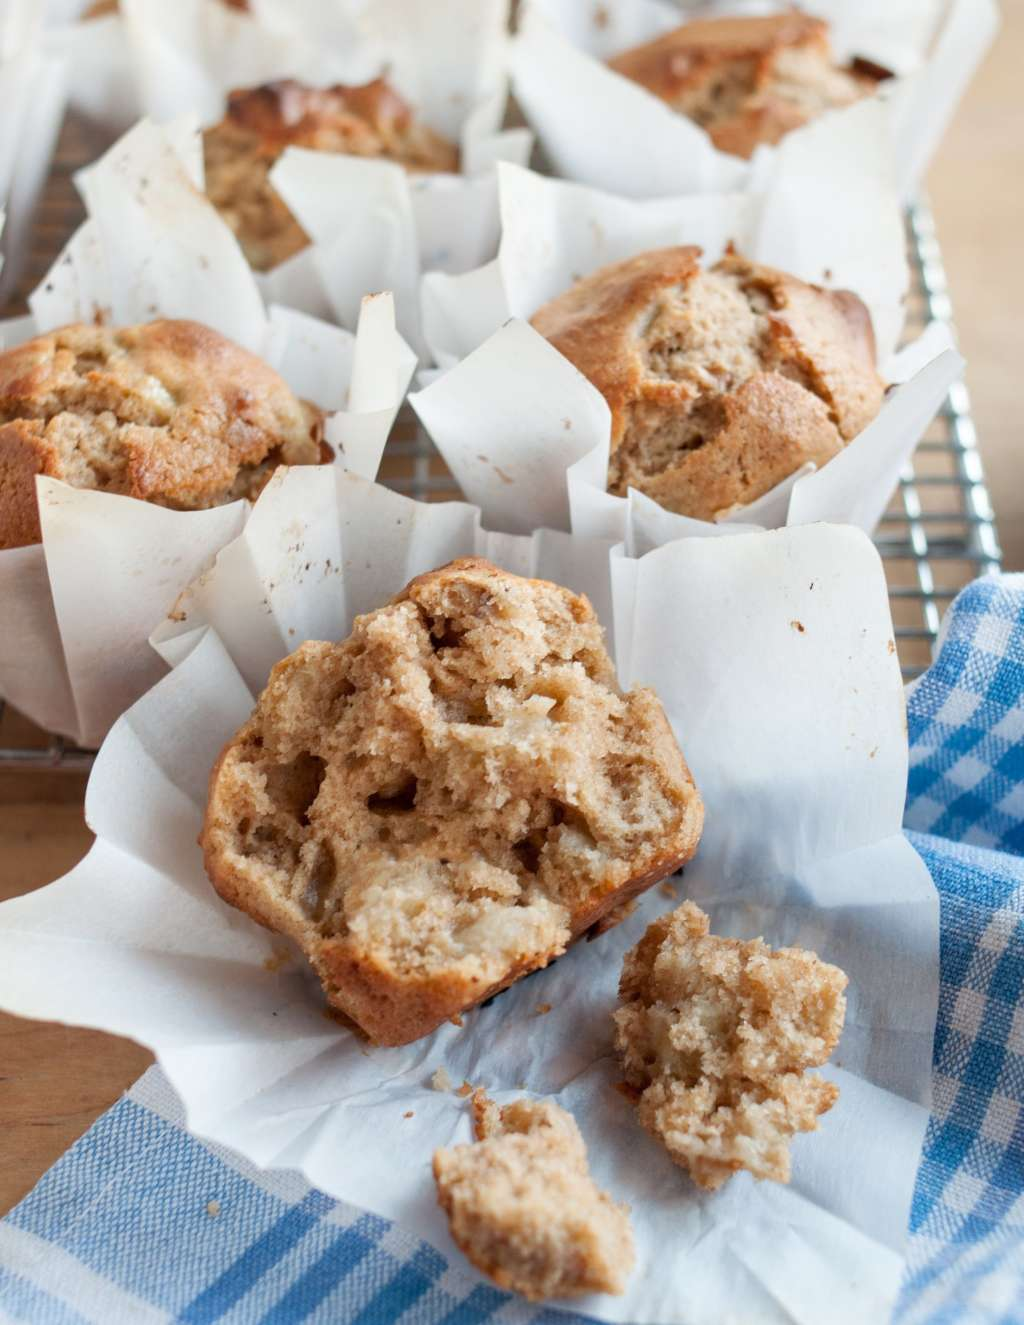 5 Mistakes to Avoid When Making Muffins